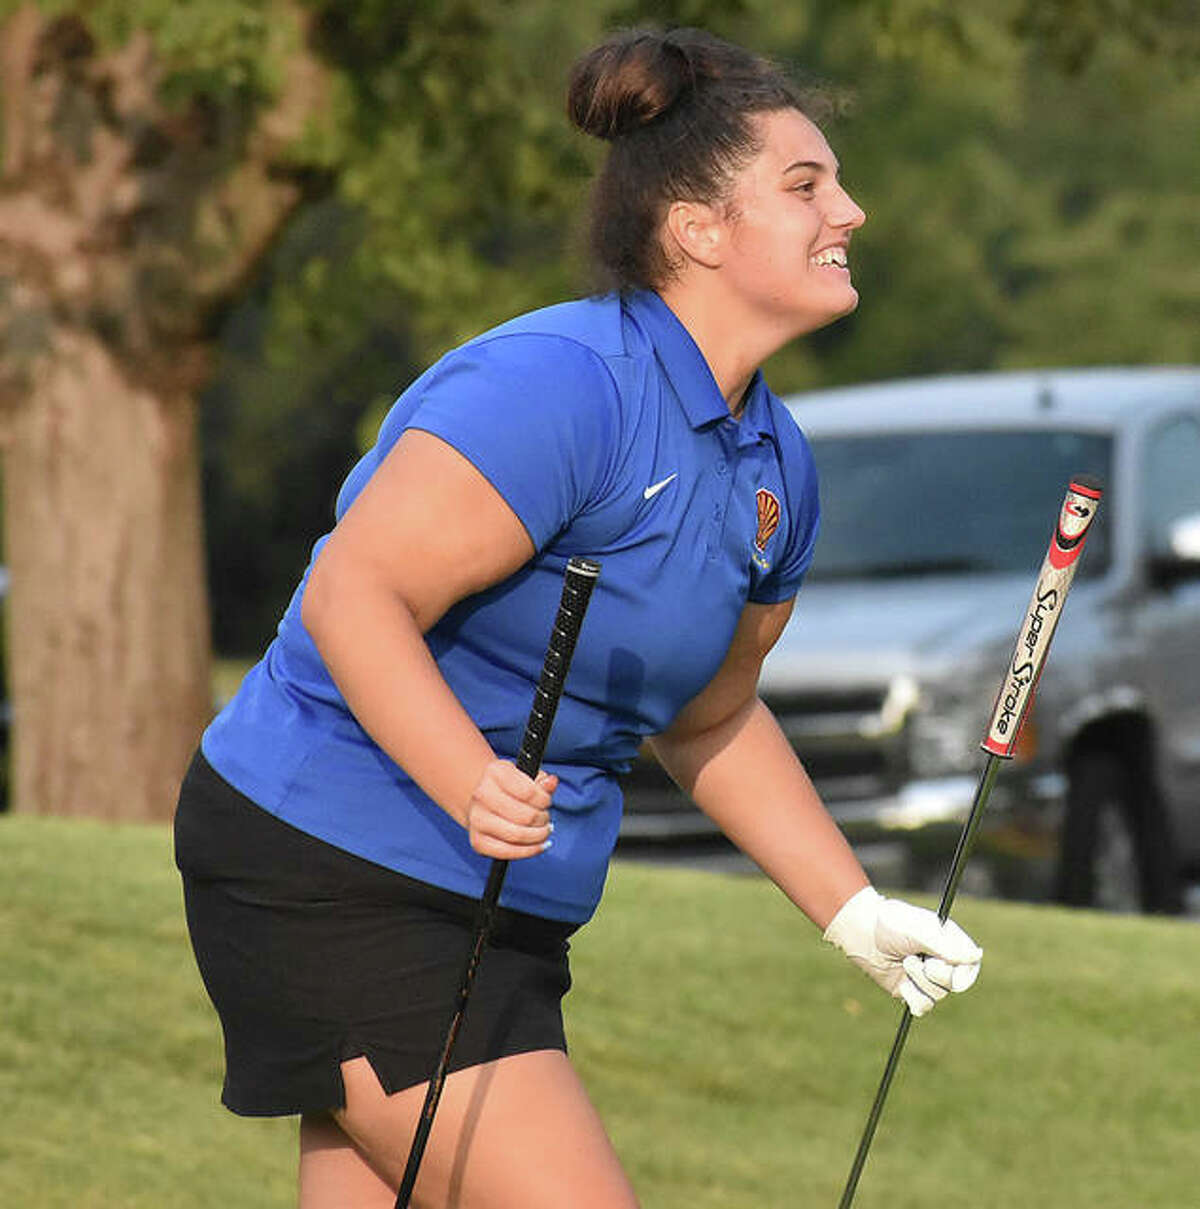 Roxana's Sarah Floyd took two clubs to the ninth green at Spencer T. Olin golf course on Wednesday, but she didn't need the putter after chipping in for birdie. She reacts while walking to the cup after leading the Shells with a 46.